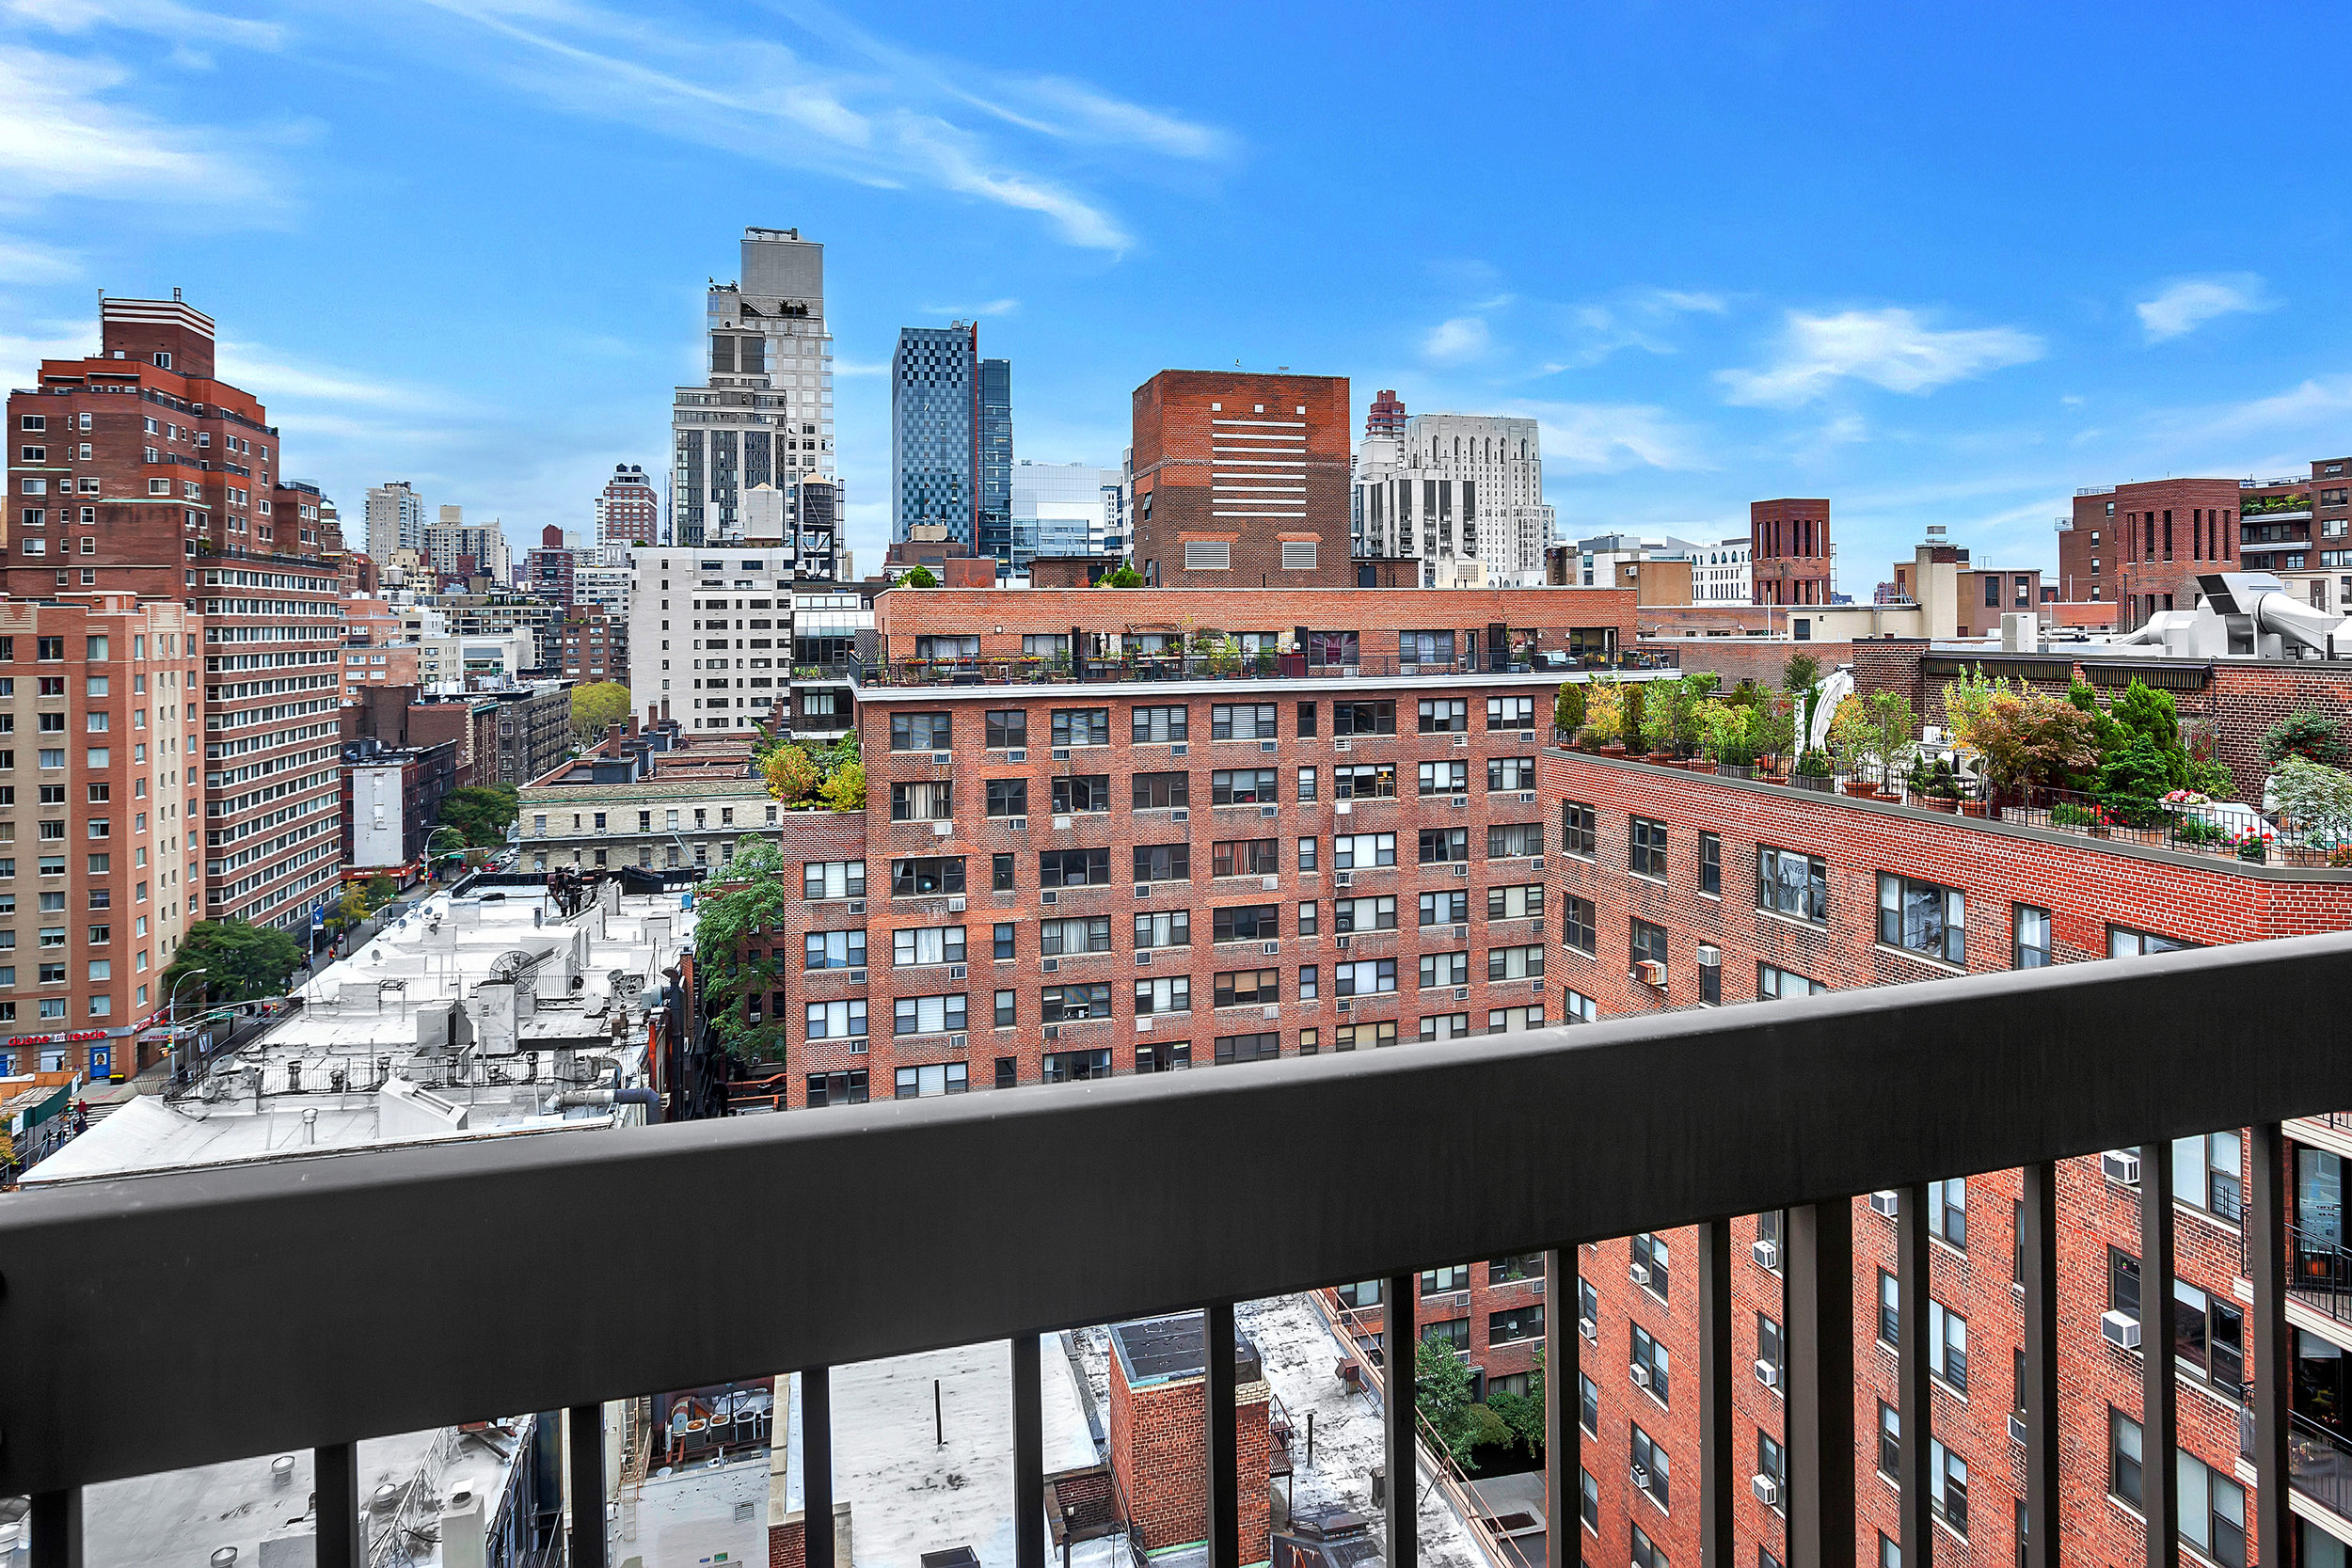 403East62ndStreet11A12A_Dylan_Hildreth-HoffmanDouglasElliman_Photography_20261497_high_res.jpg